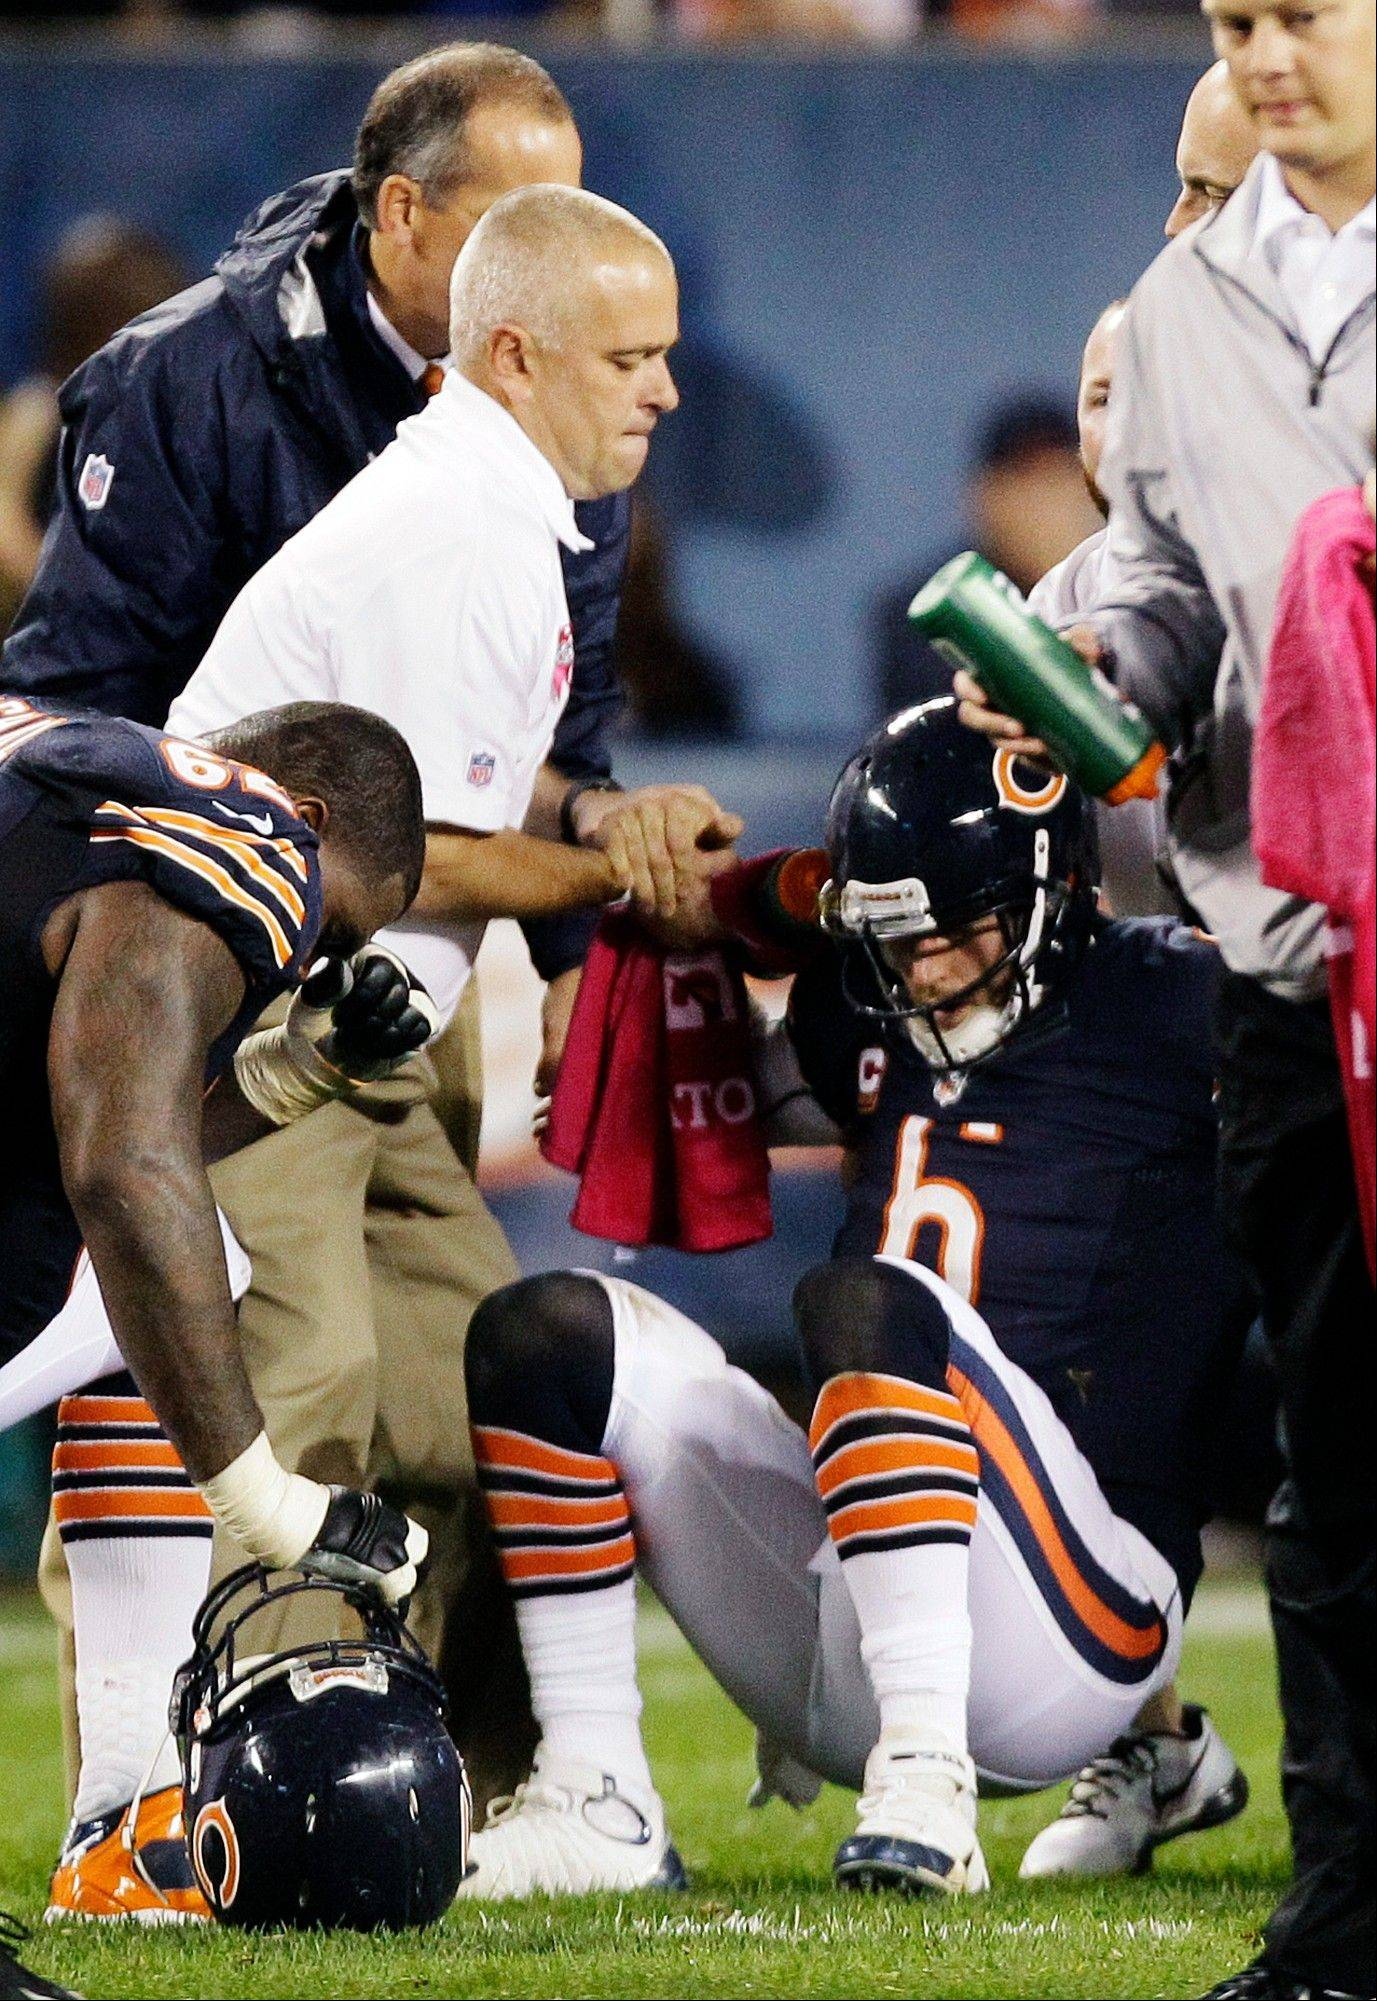 Bears quarterback Jay Cutler is helped up from the field after he was sacked by Detroit defensive tackle Ndamukong Suh in the first half of Monday's game at Soldier Field.